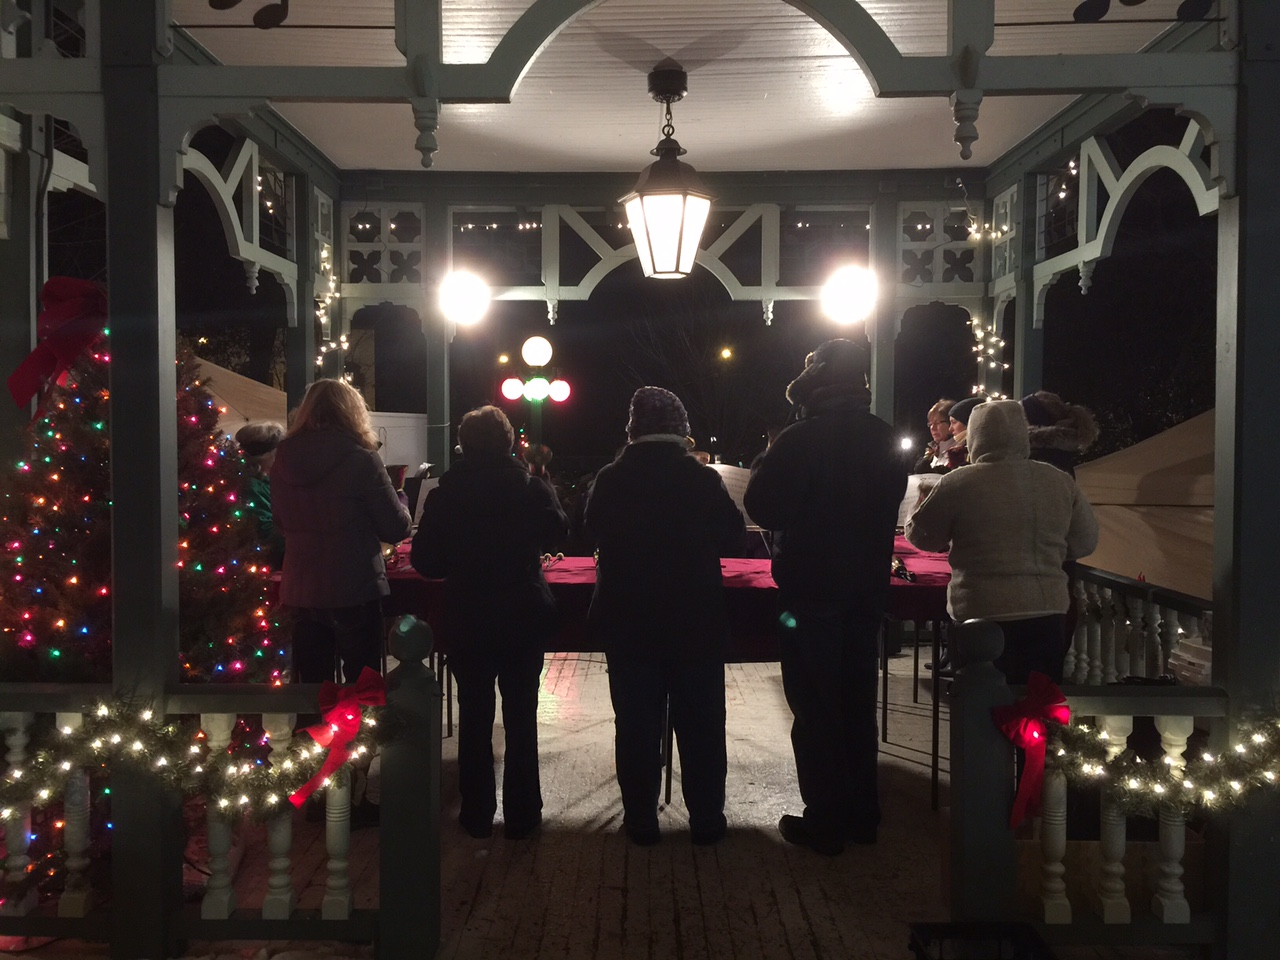 Christmas In The Park.Christmas In The Park Hammondsport Chamber Of Commerce